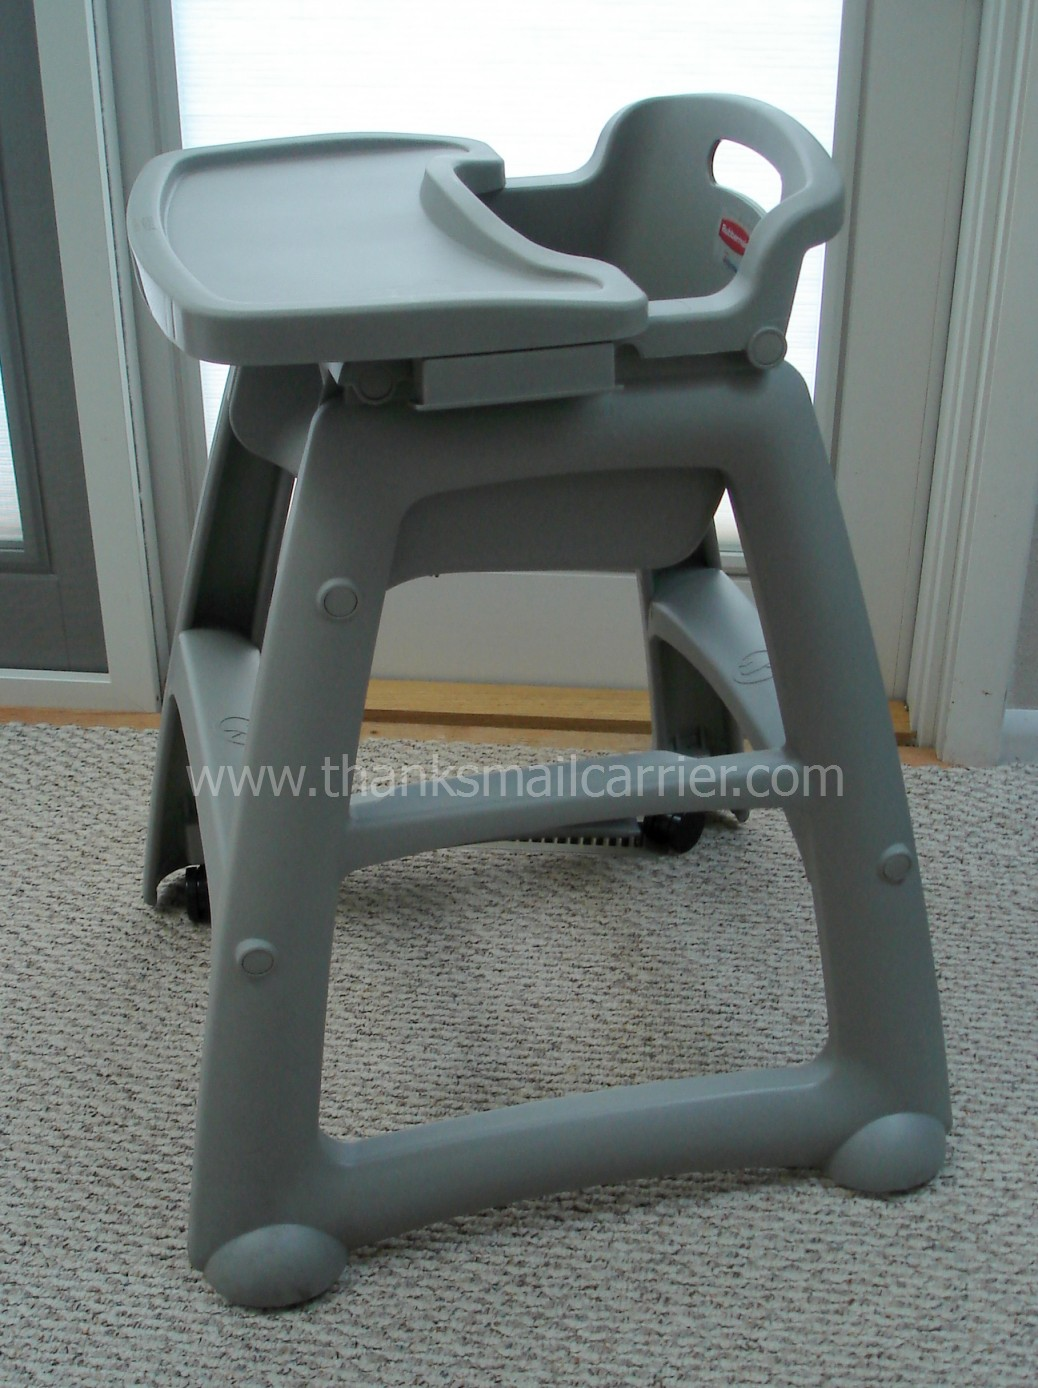 Rubbermaid Chairs Thanks Mail Carrier Rubbermaid High Chair And Tray From